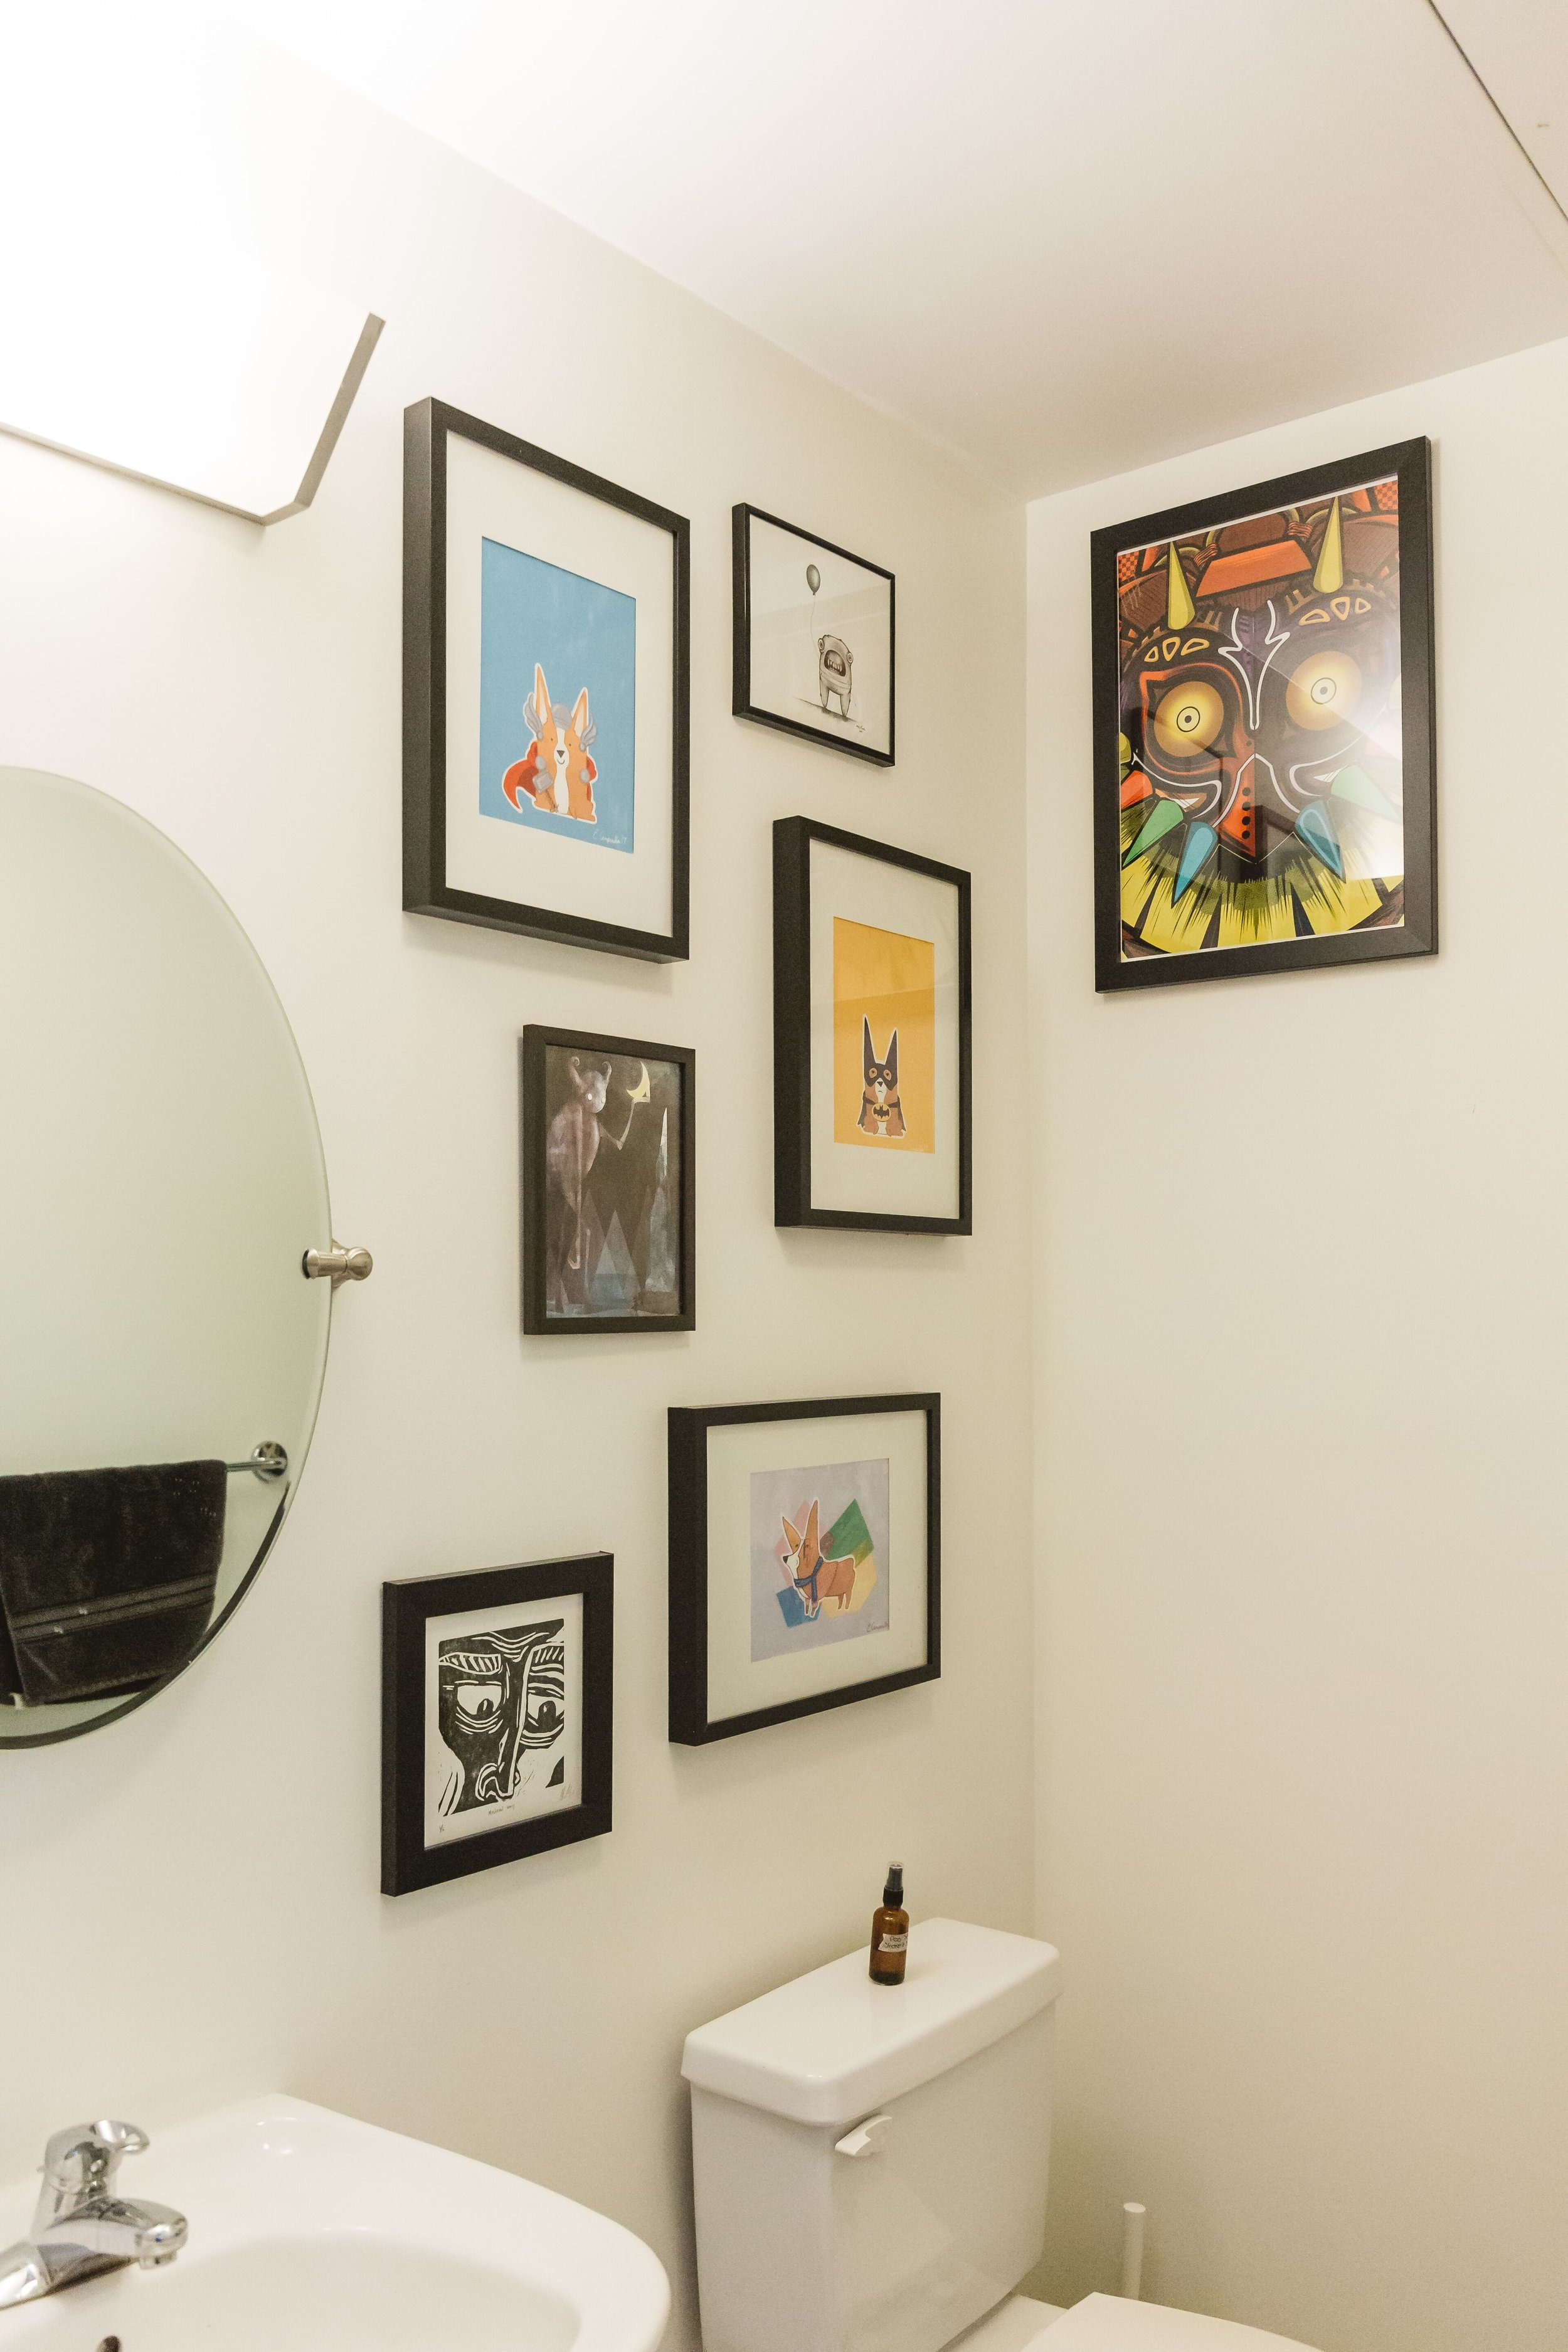 Black frames stand out against the white walls in the bathroom, and add a fun and colorful twist on bathroom decor.